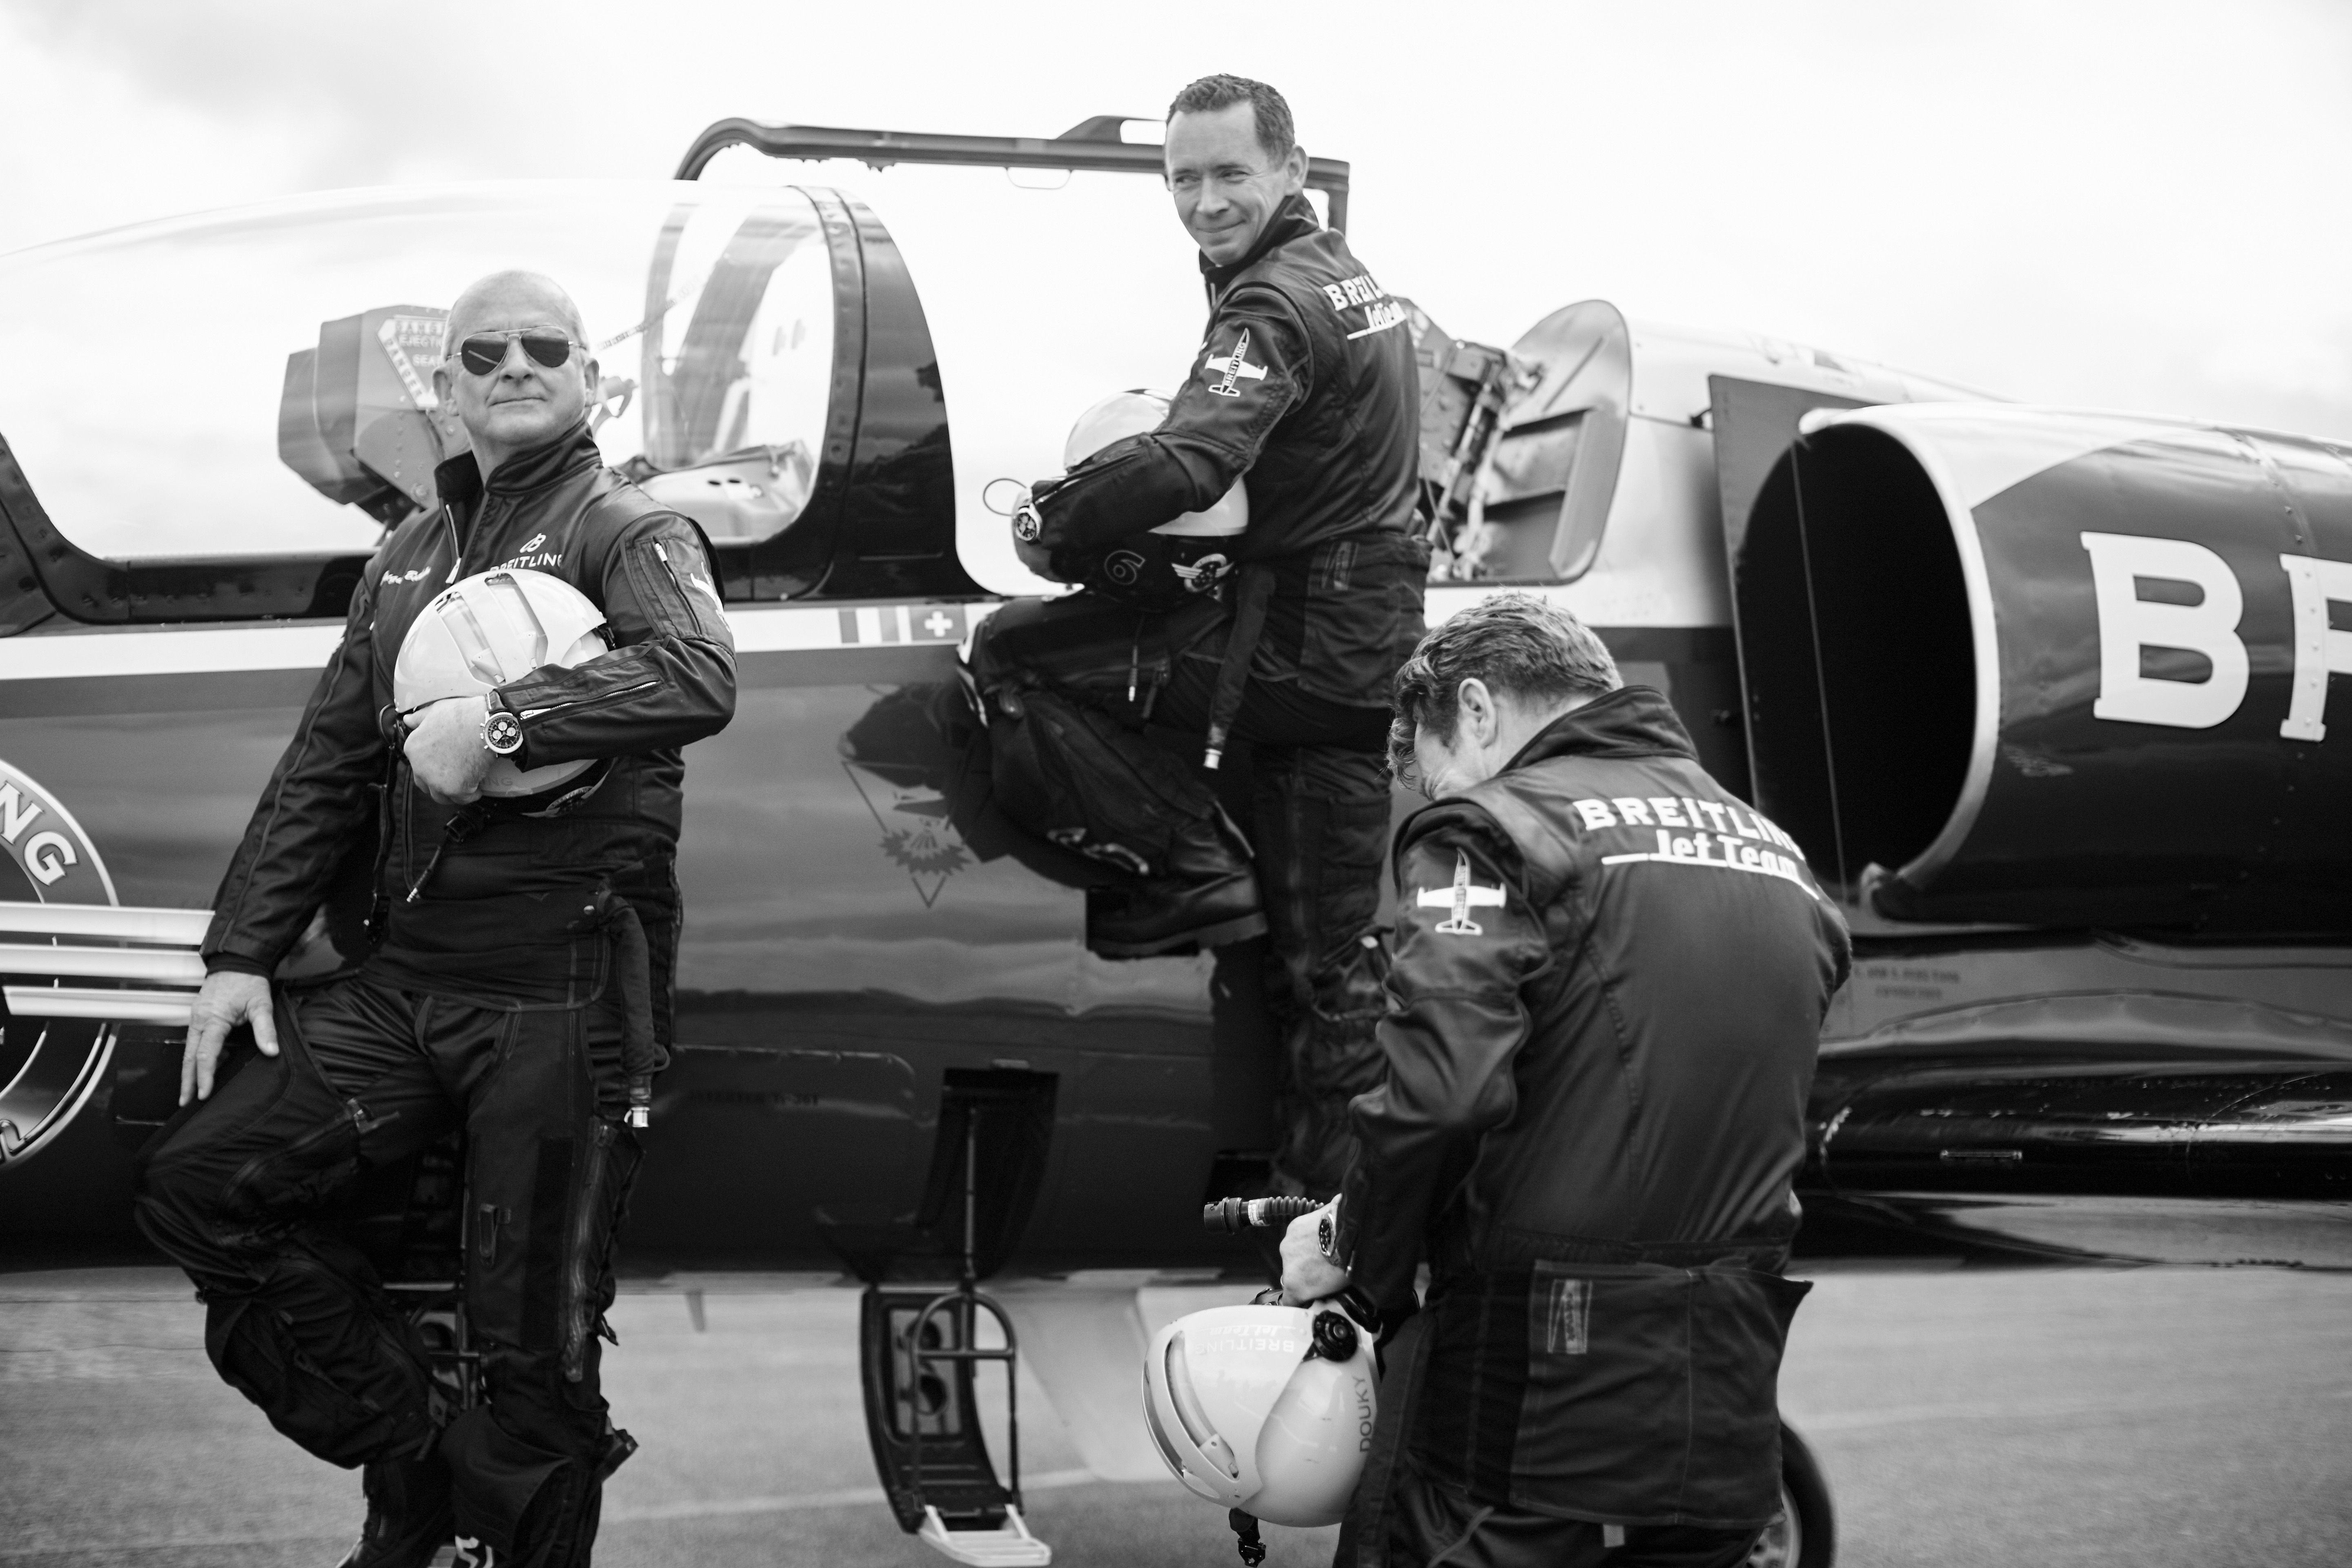 The three members of Breitling's Jet Team Squad